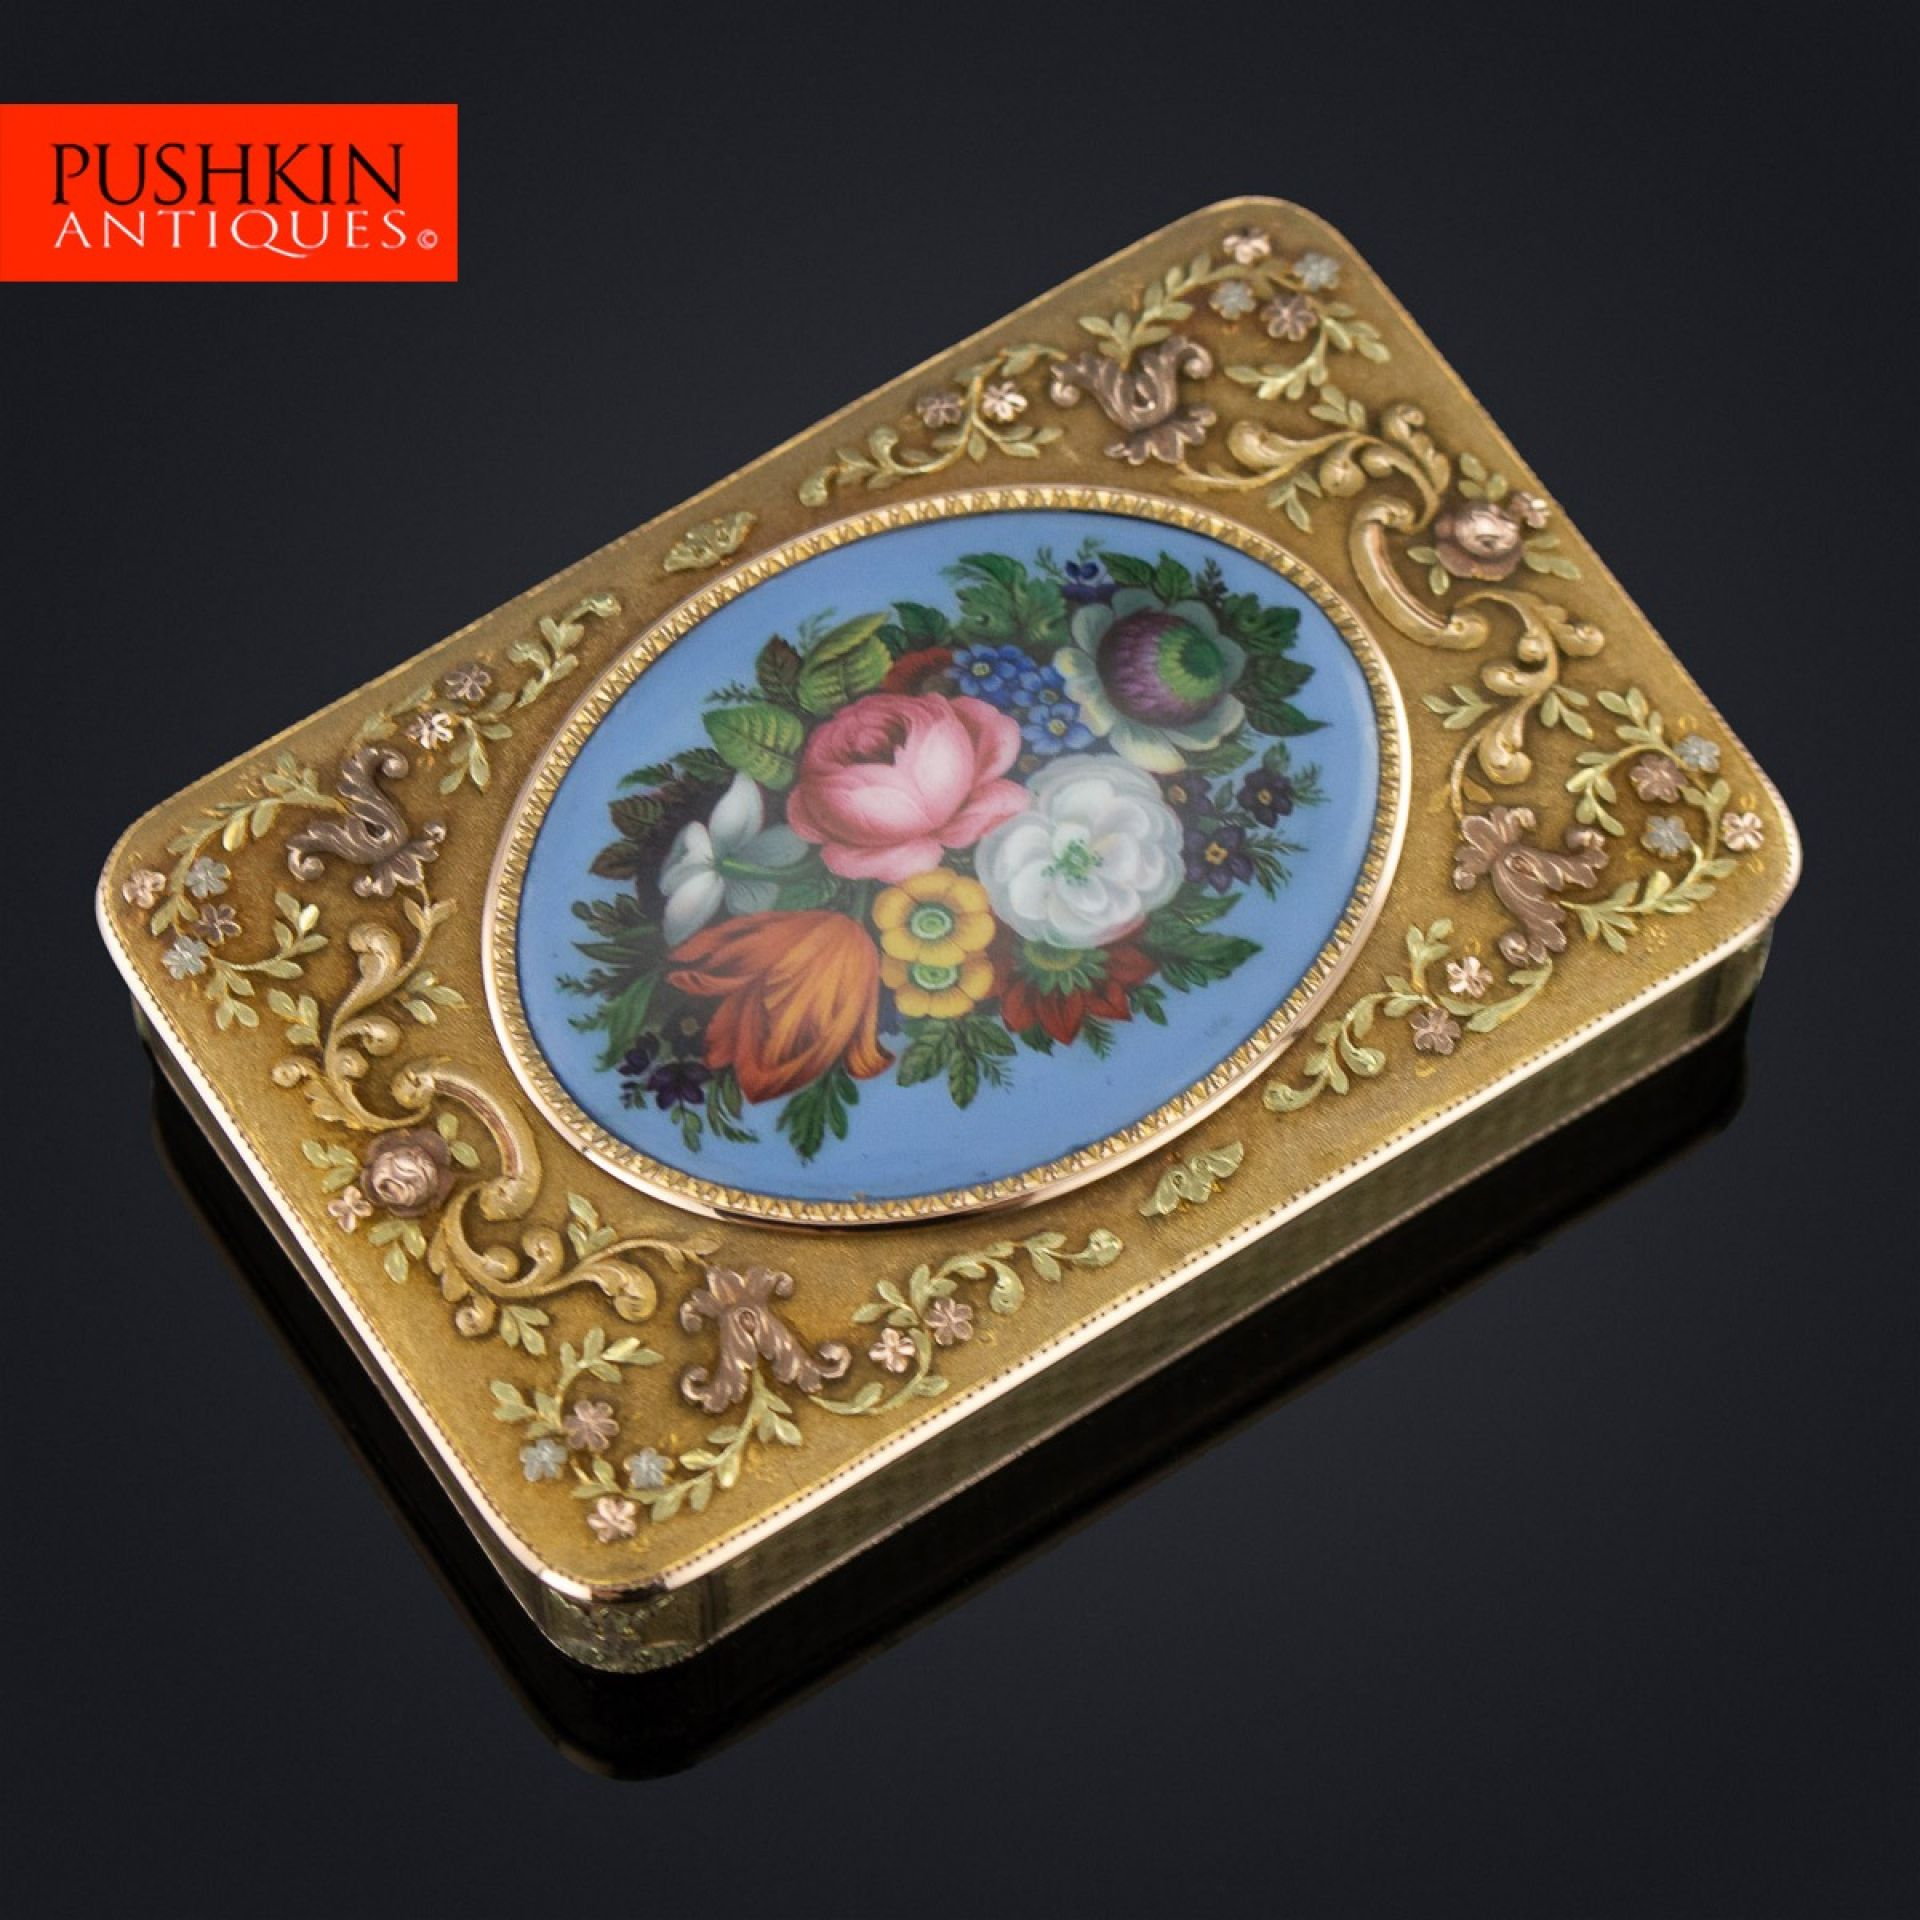 ANTIQUE 19thC GERMAN 18K THREE-COLOUR GOLD & ENAMEL SNUFF BOX c.1860